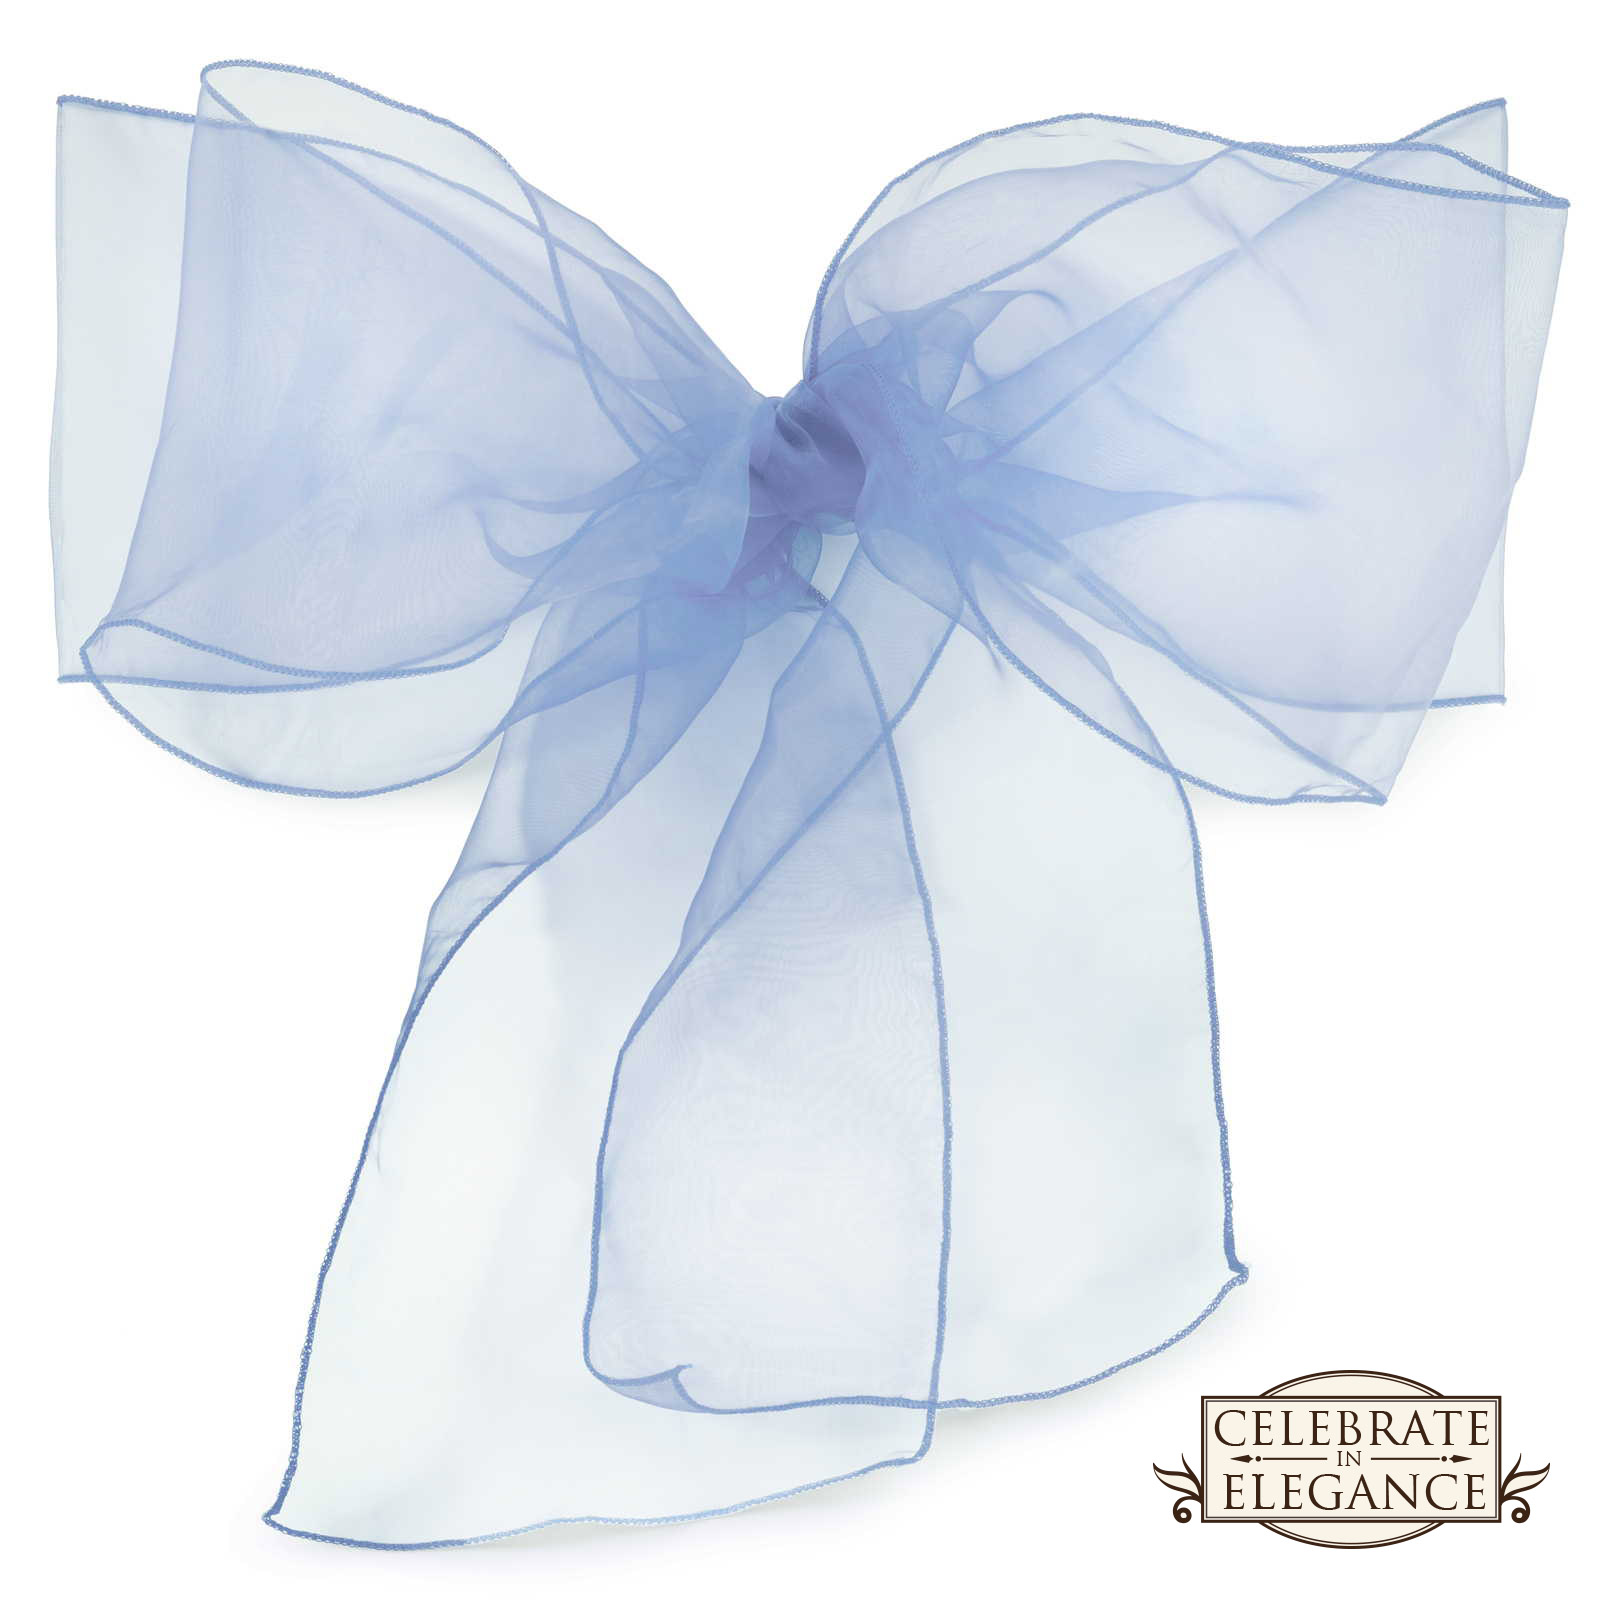 tulle chair covers for wedding 2 person dining table and chairs 100 organza cover bow sashes party